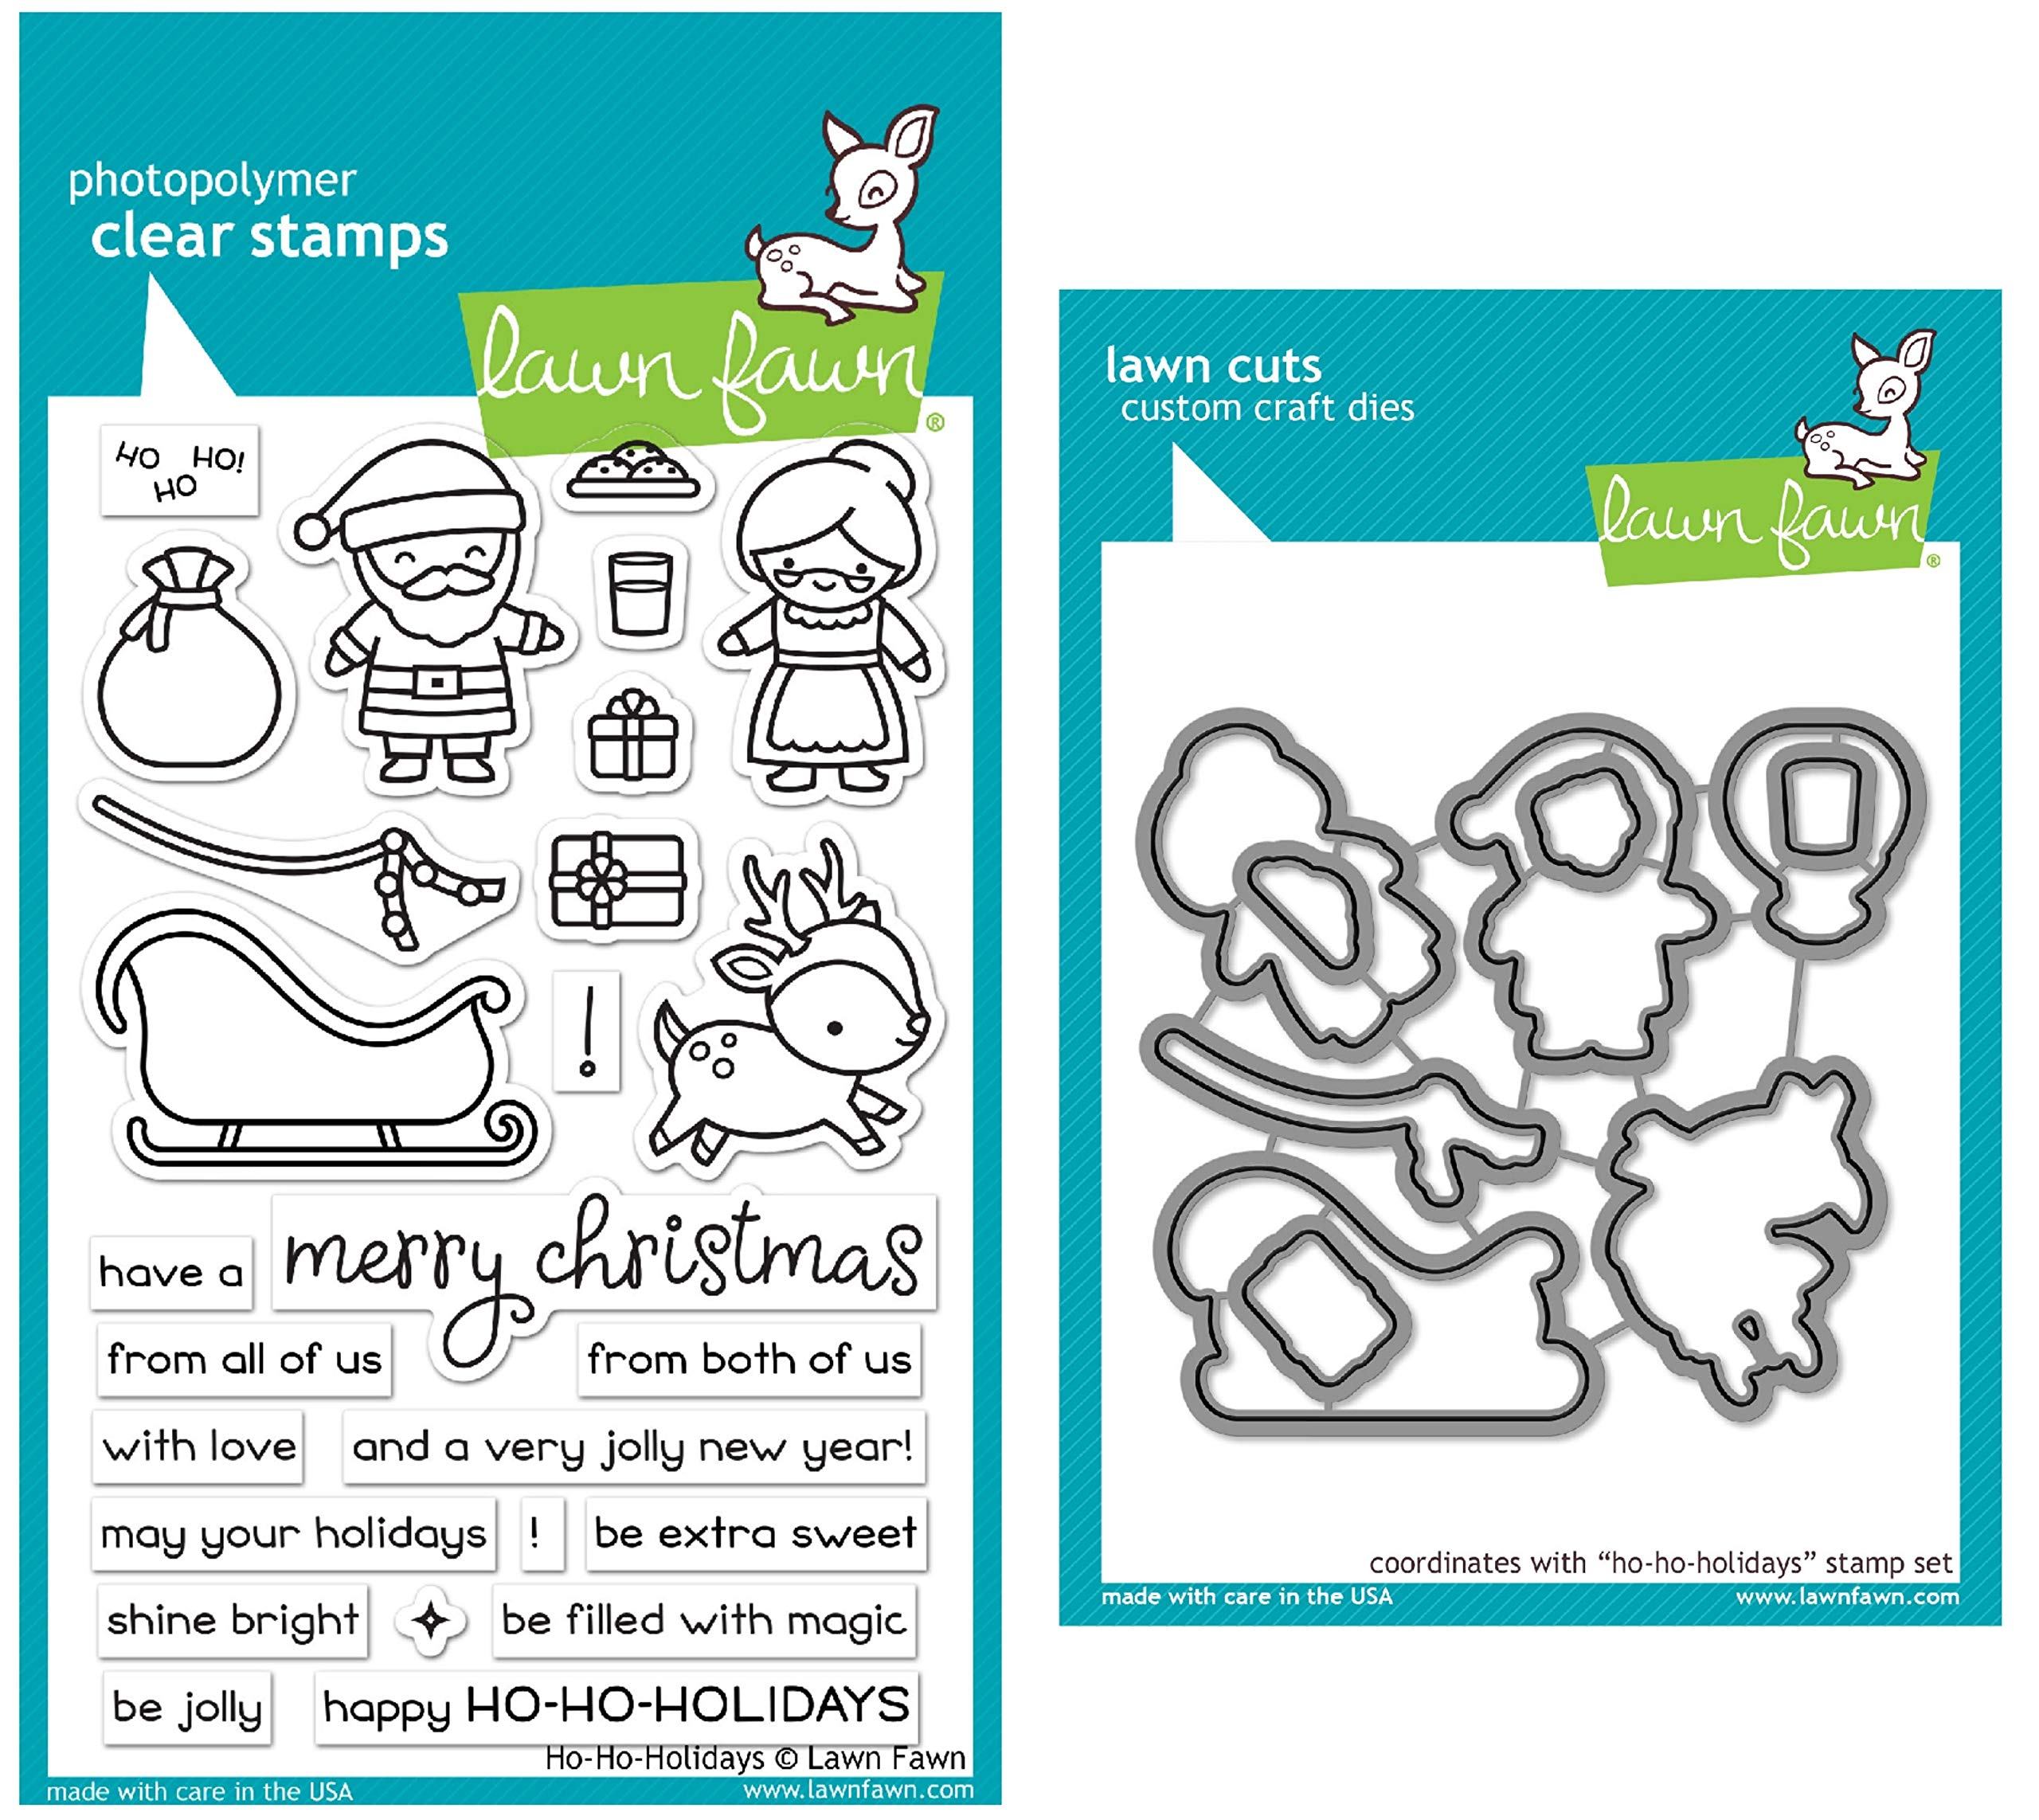 Lawn Fawn Ho-Ho Holidays Clear Stamps and Coordinating Dies - Bundle of 2 Items (LF2029, LF2030)